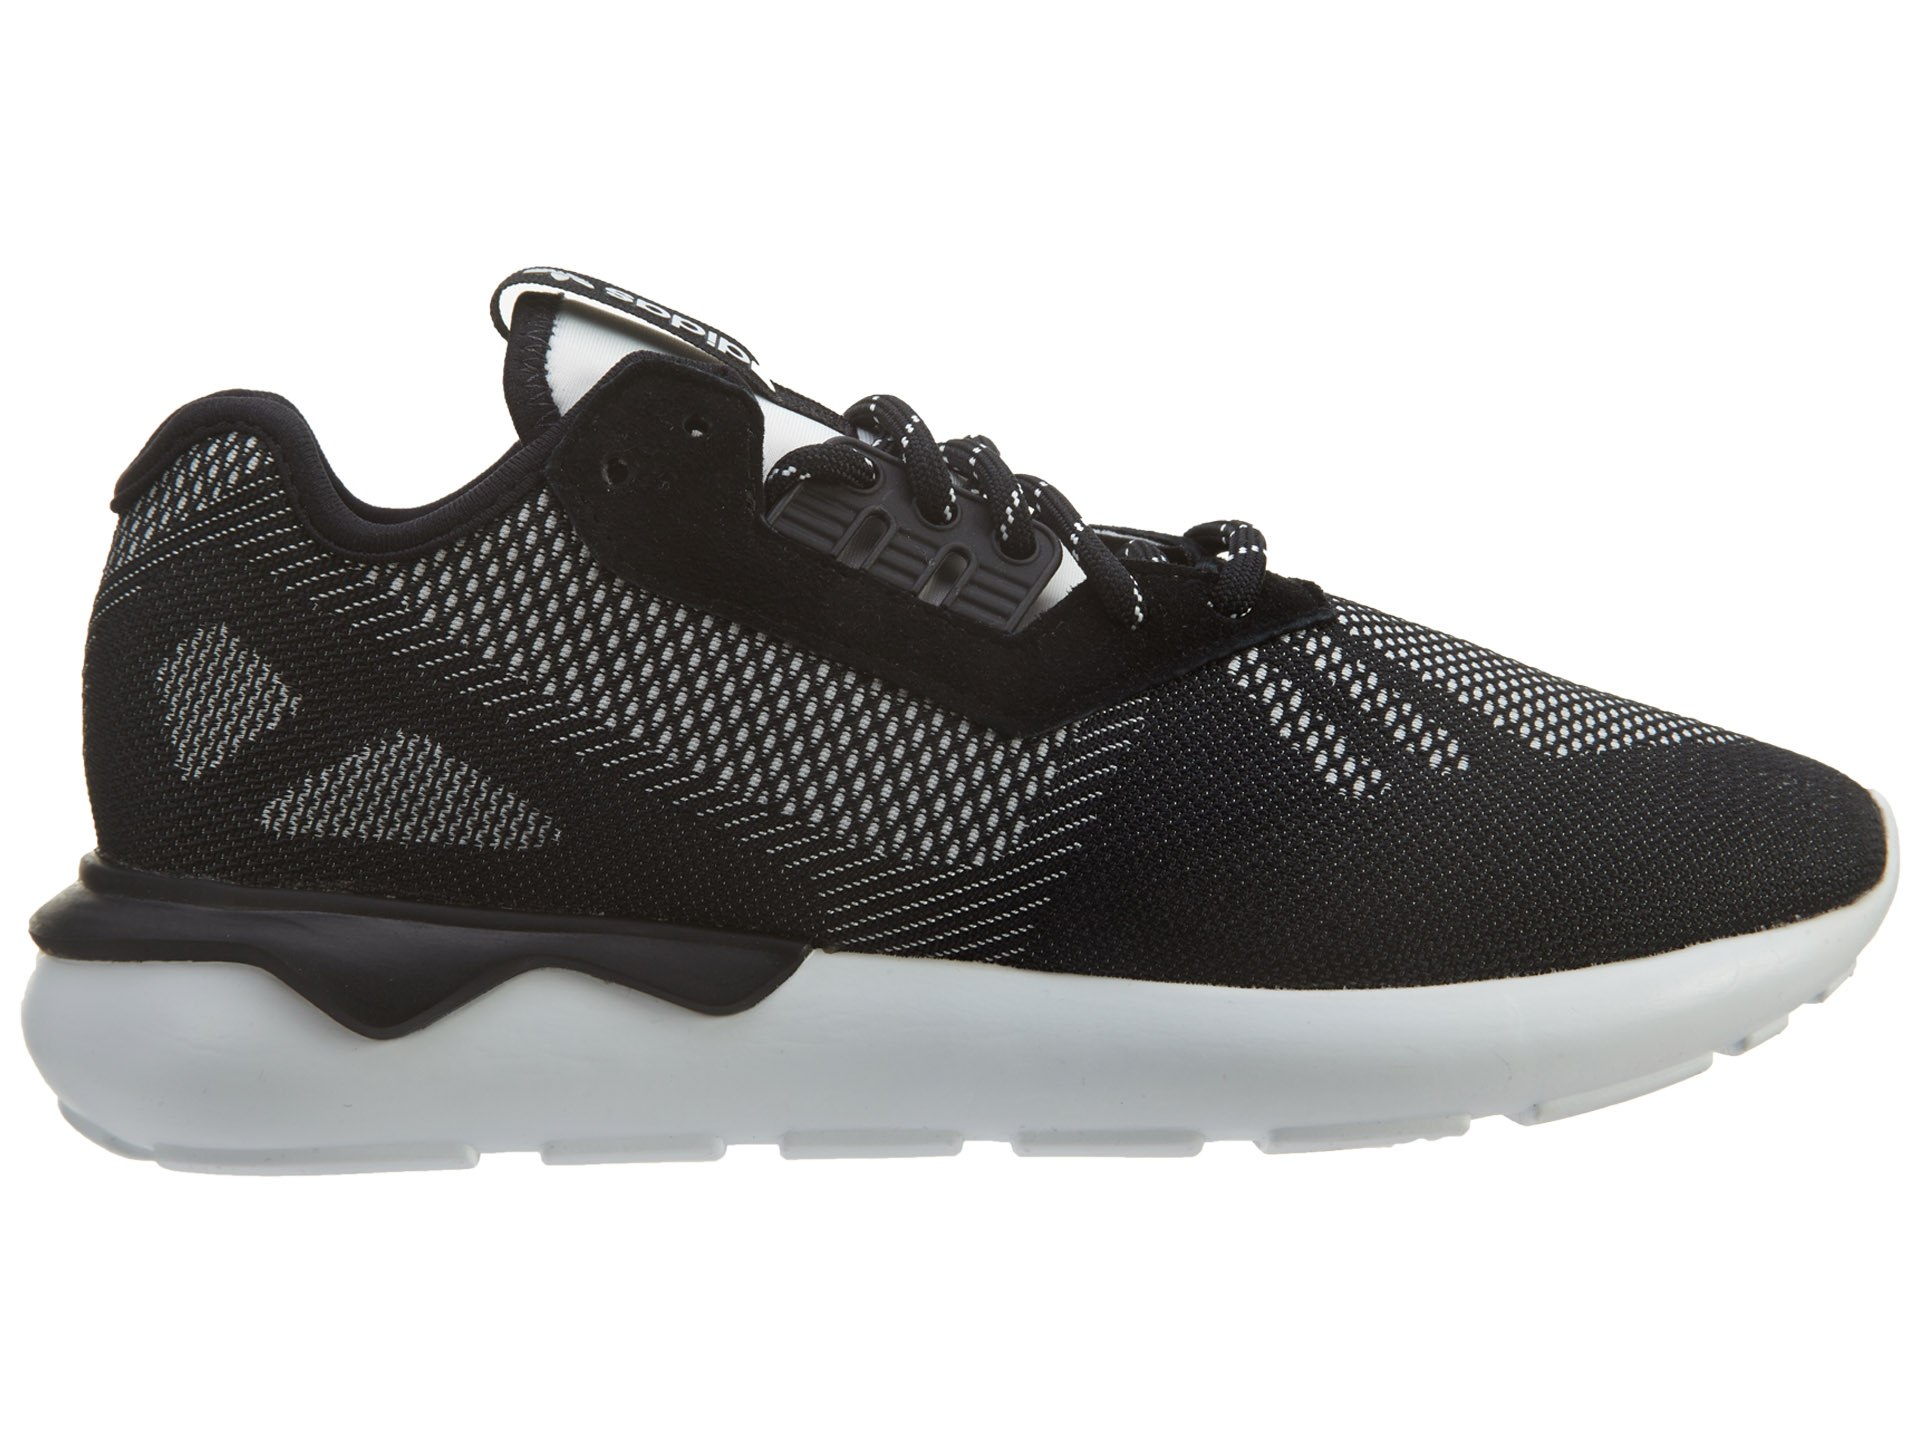 adidas Tubular Runner Weave Black/Black/White